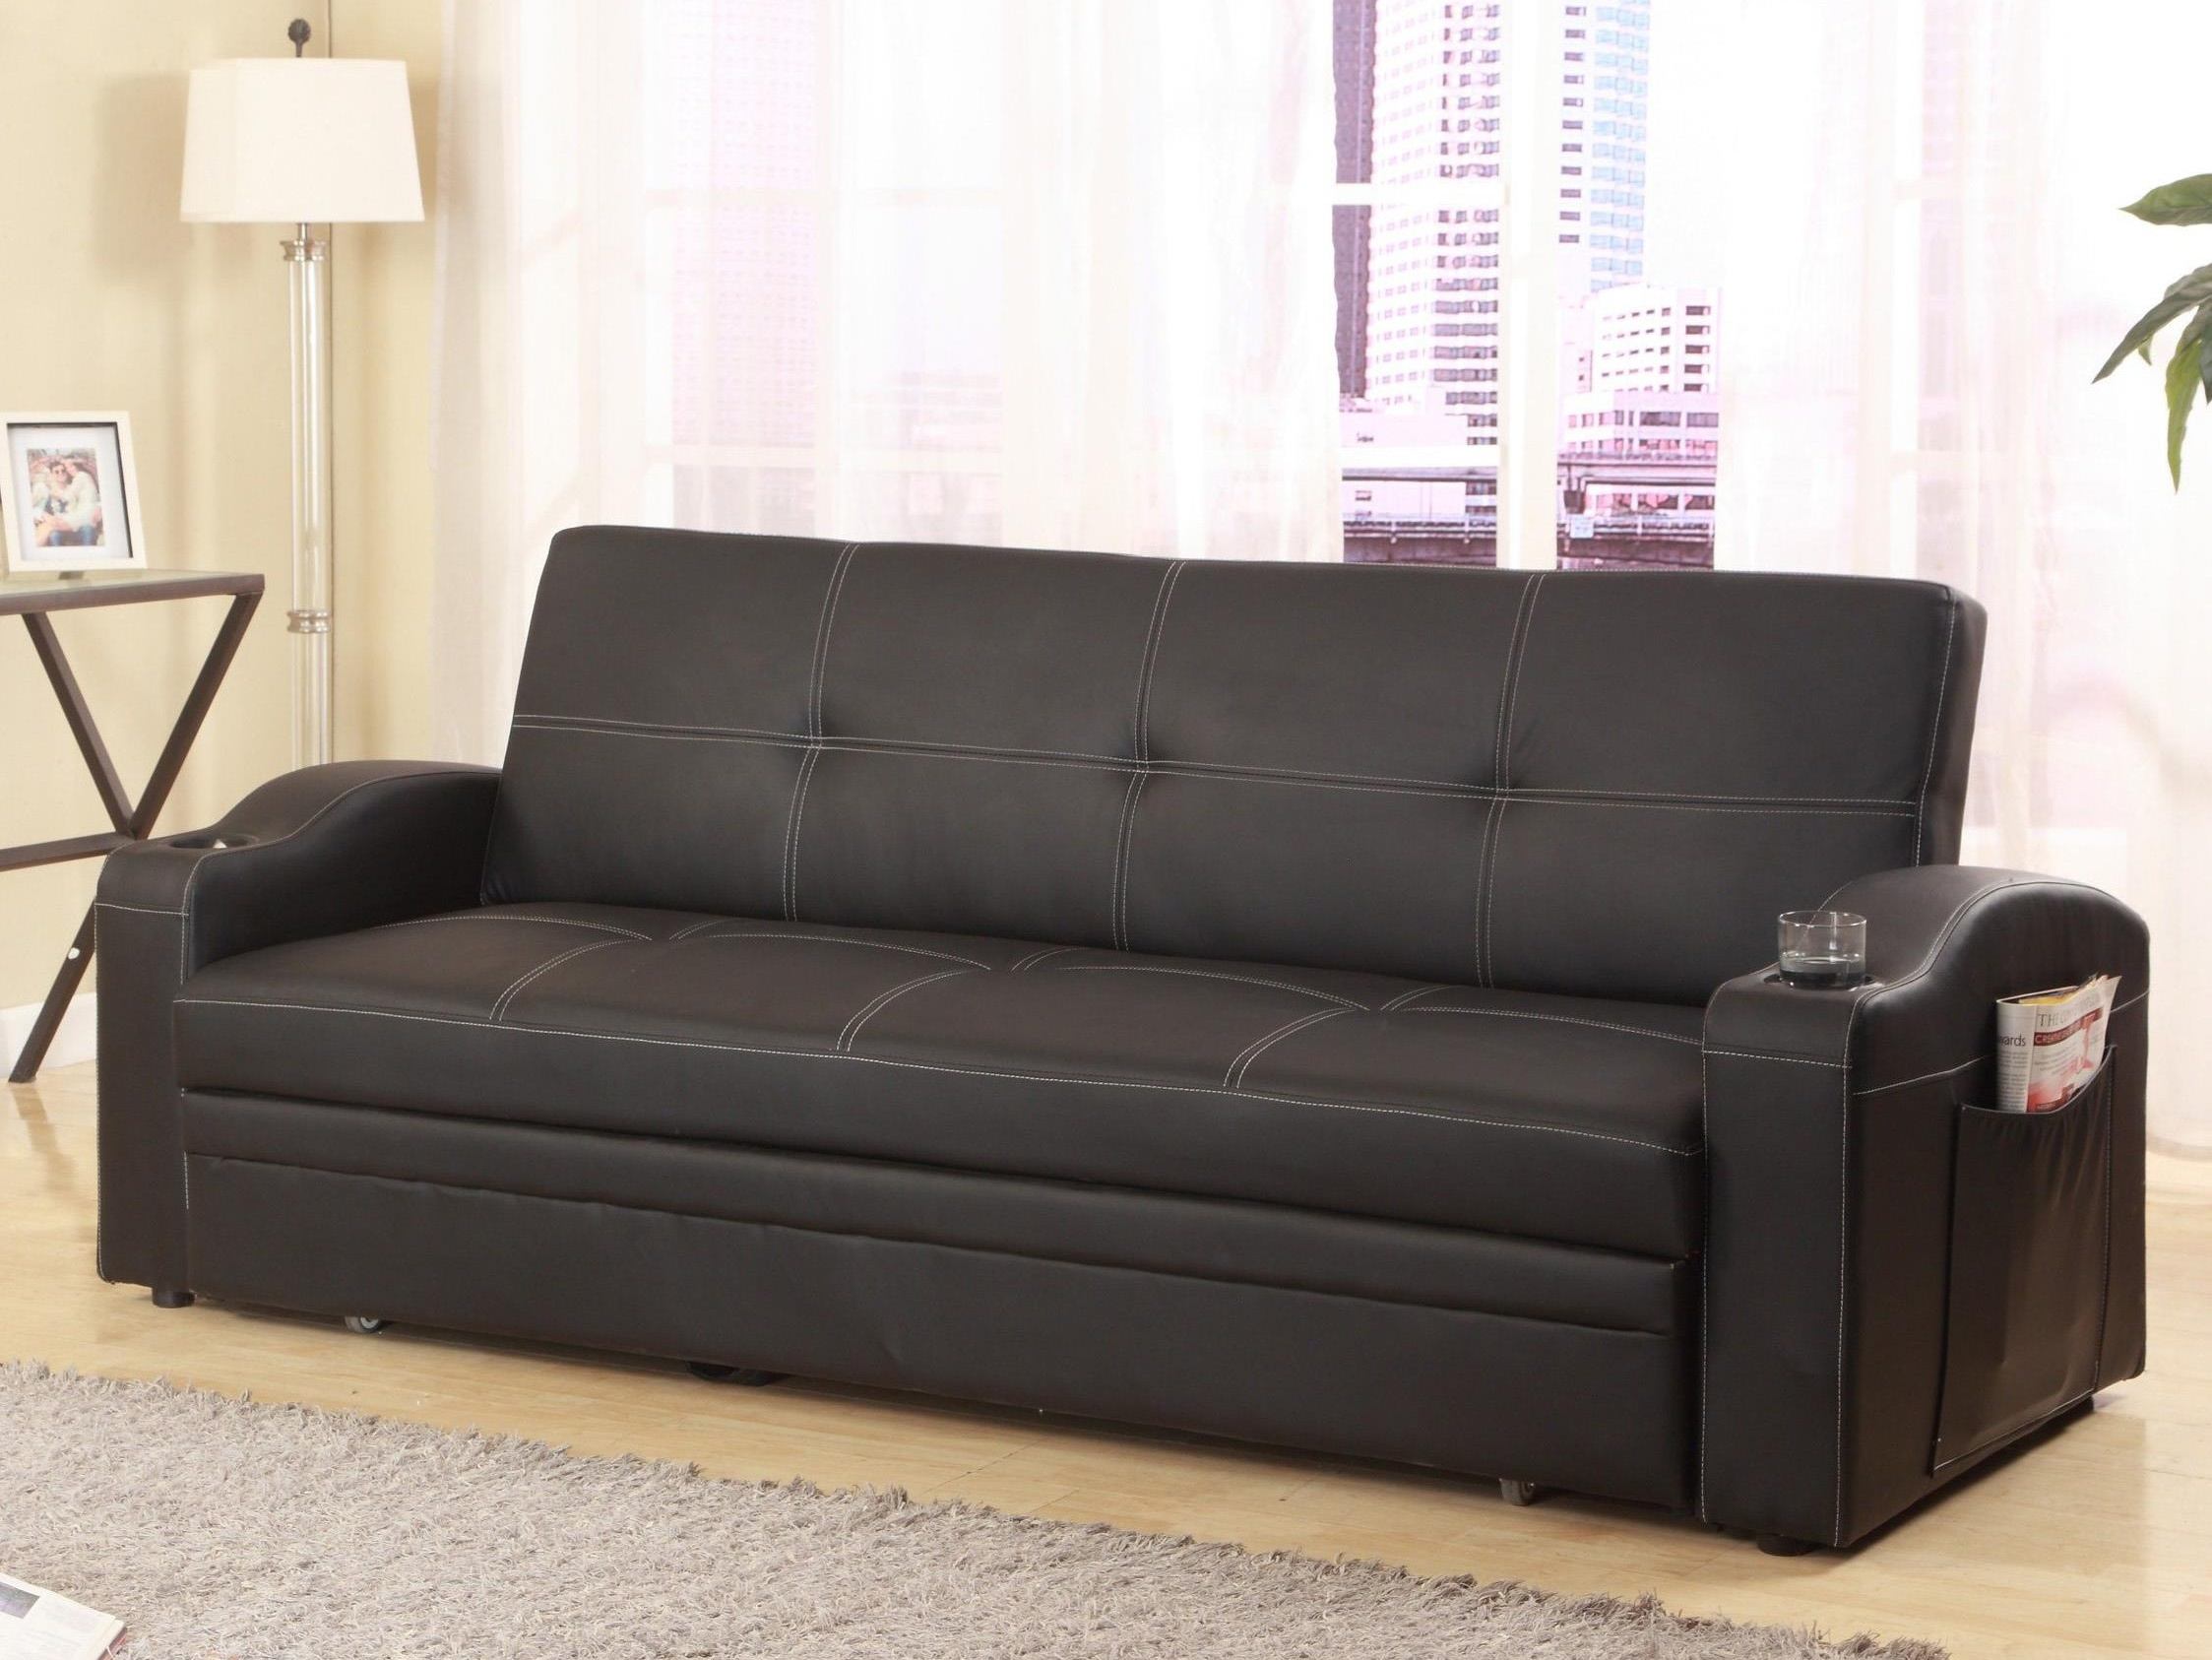 Furniture Clearance Center Headboards and Futons